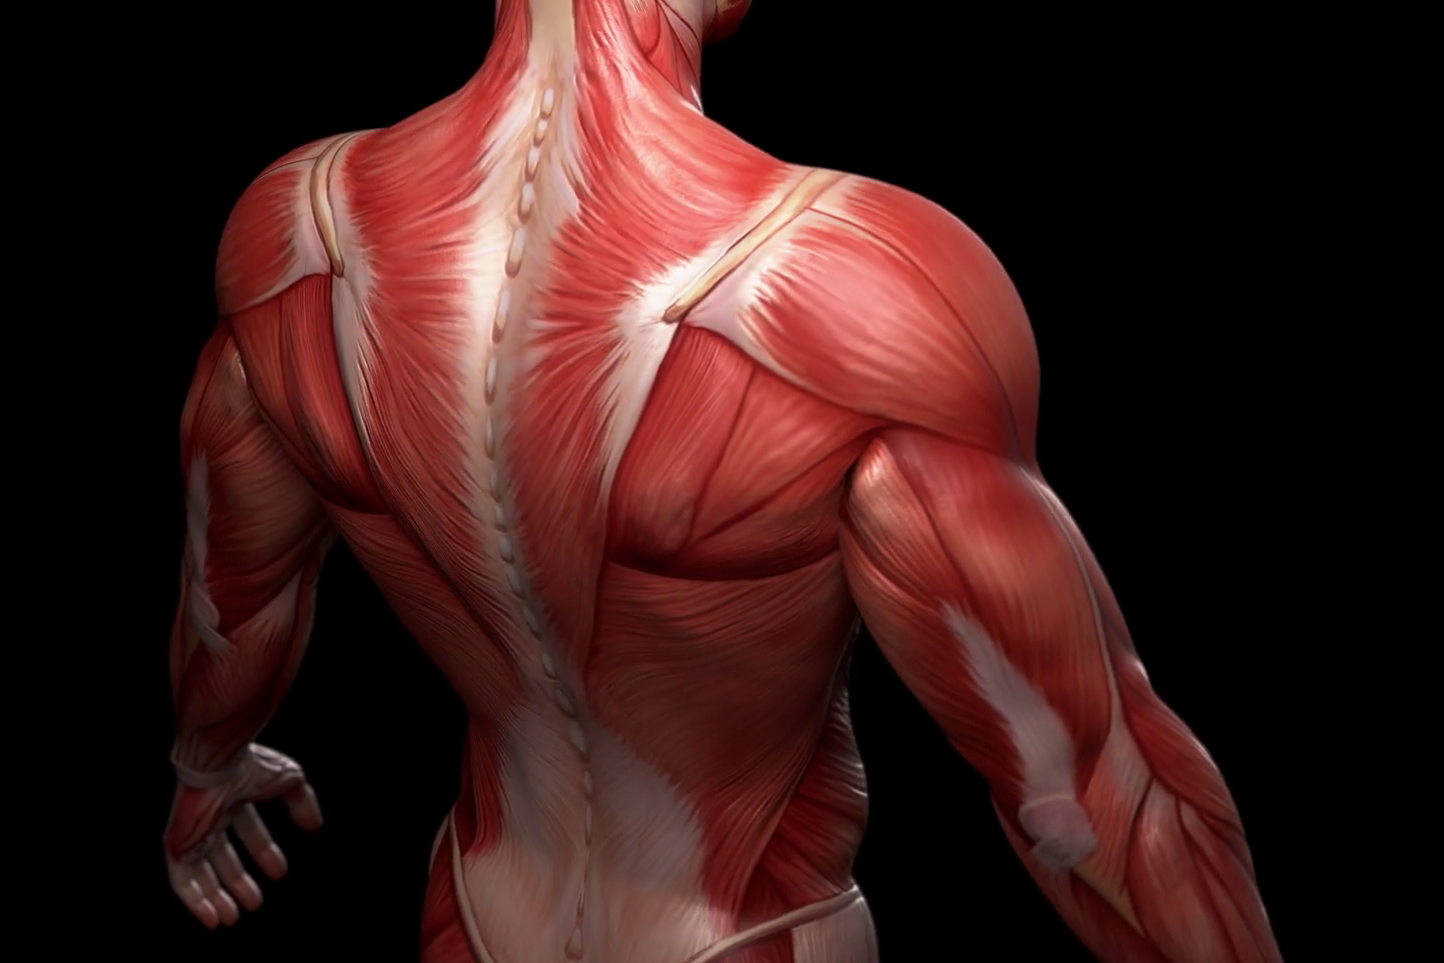 complete-3d-animation-of-the-muscles-of-the-human-male-body-alpha-included_r8lj9p6mx_thumbnail-full03